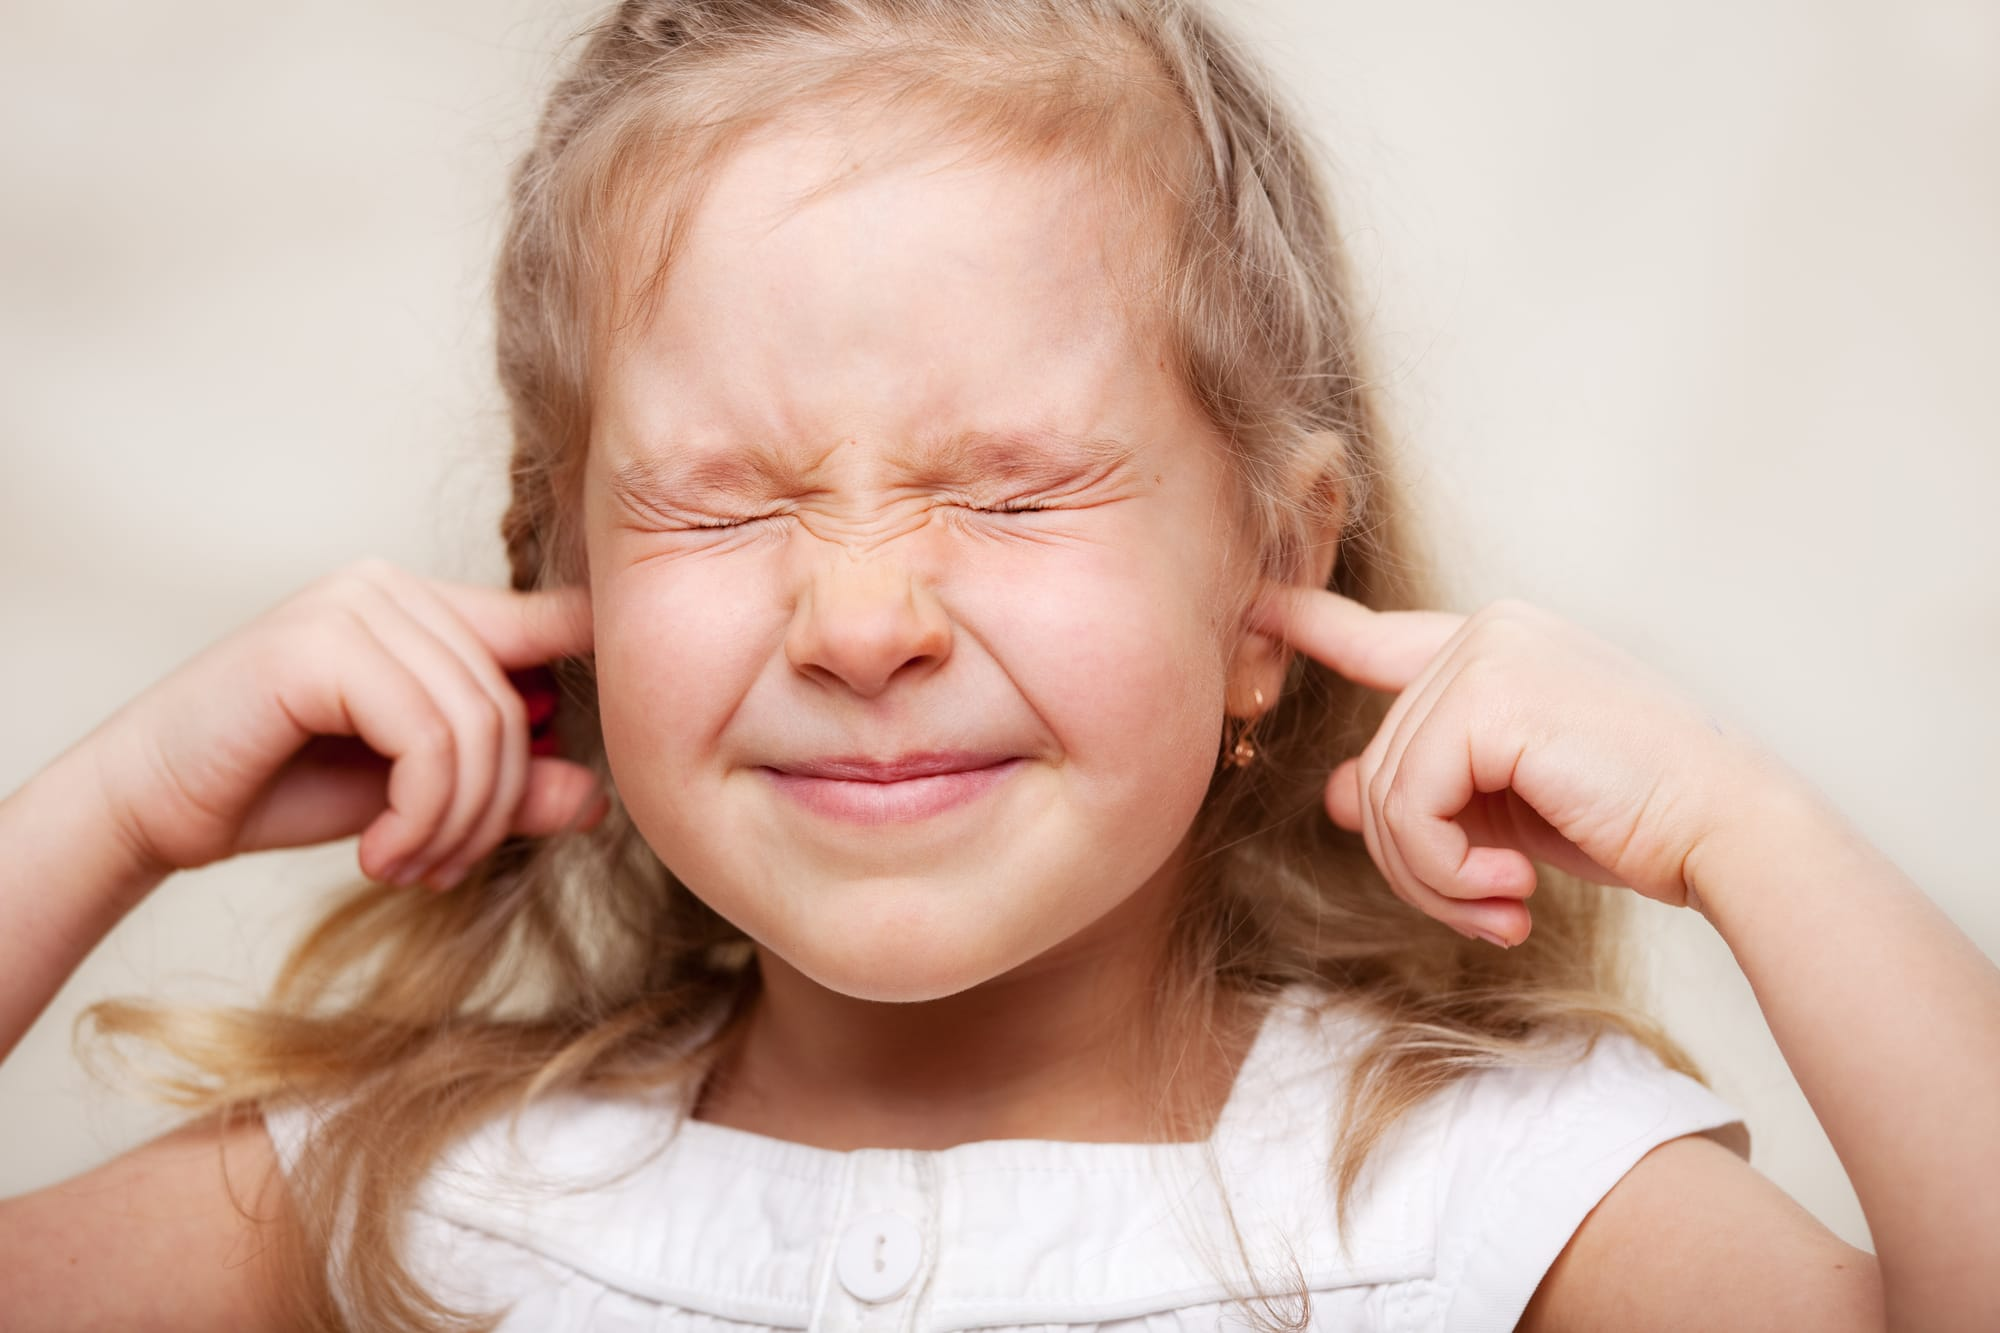 keep divorce away from children's ears